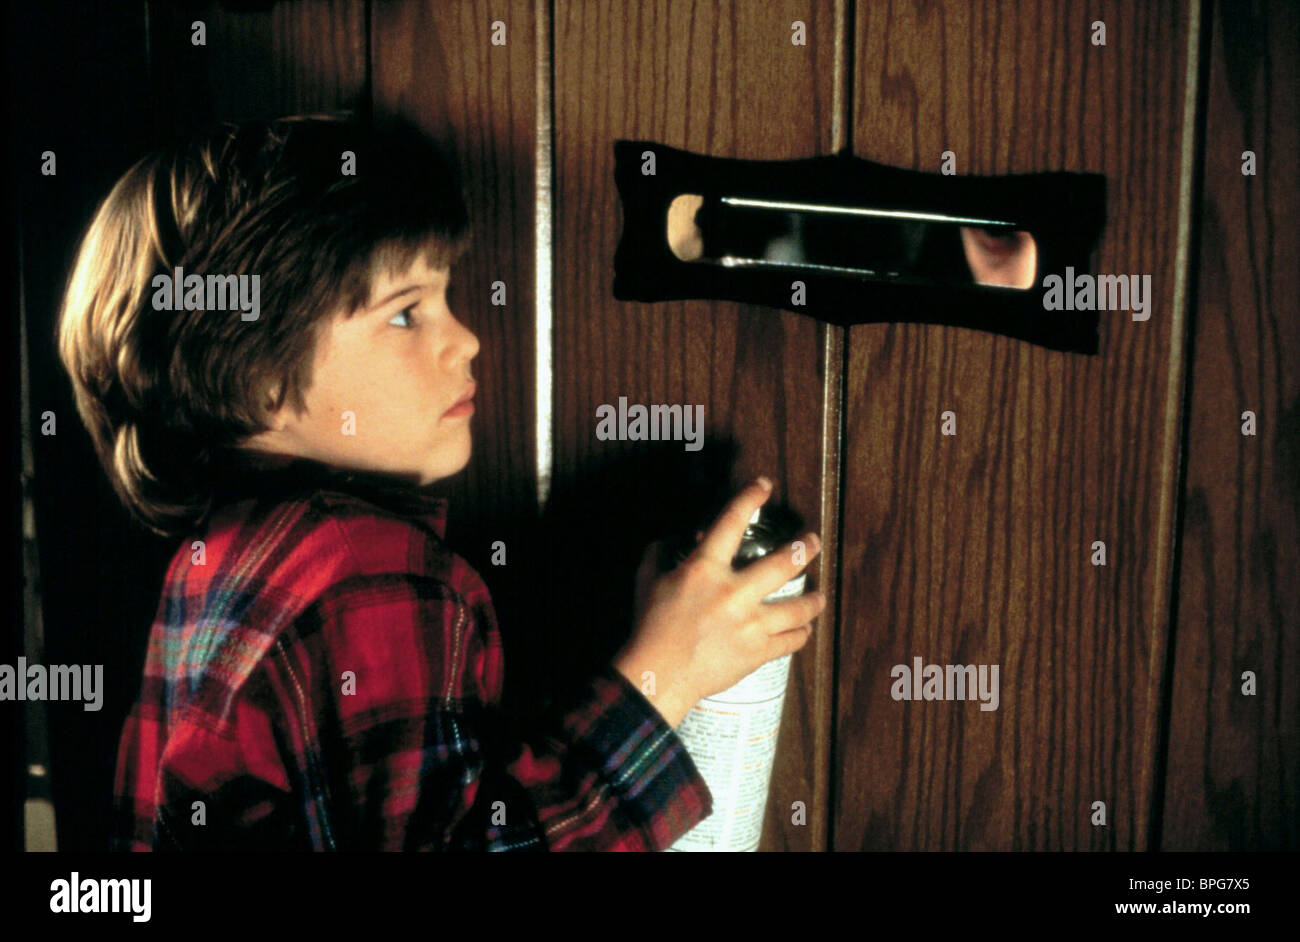 Alex d linz home alone 3 1997 stock photo royalty free for Home alone 3